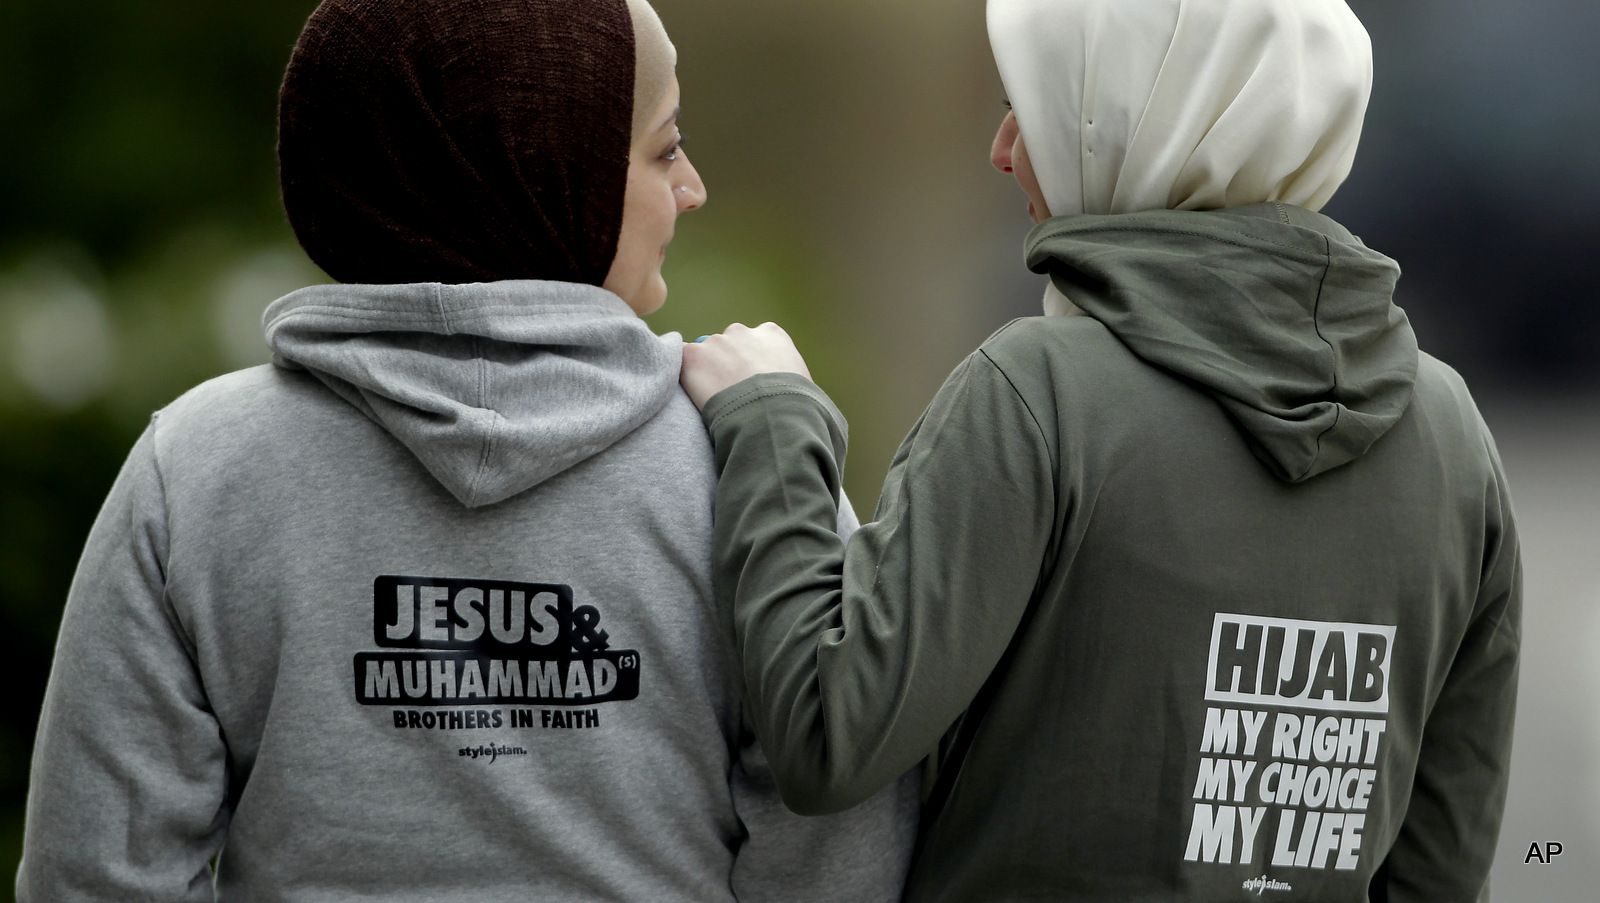 A Step Toward Progress: Supreme Court Rules Against Abercrombie In Hijab Case